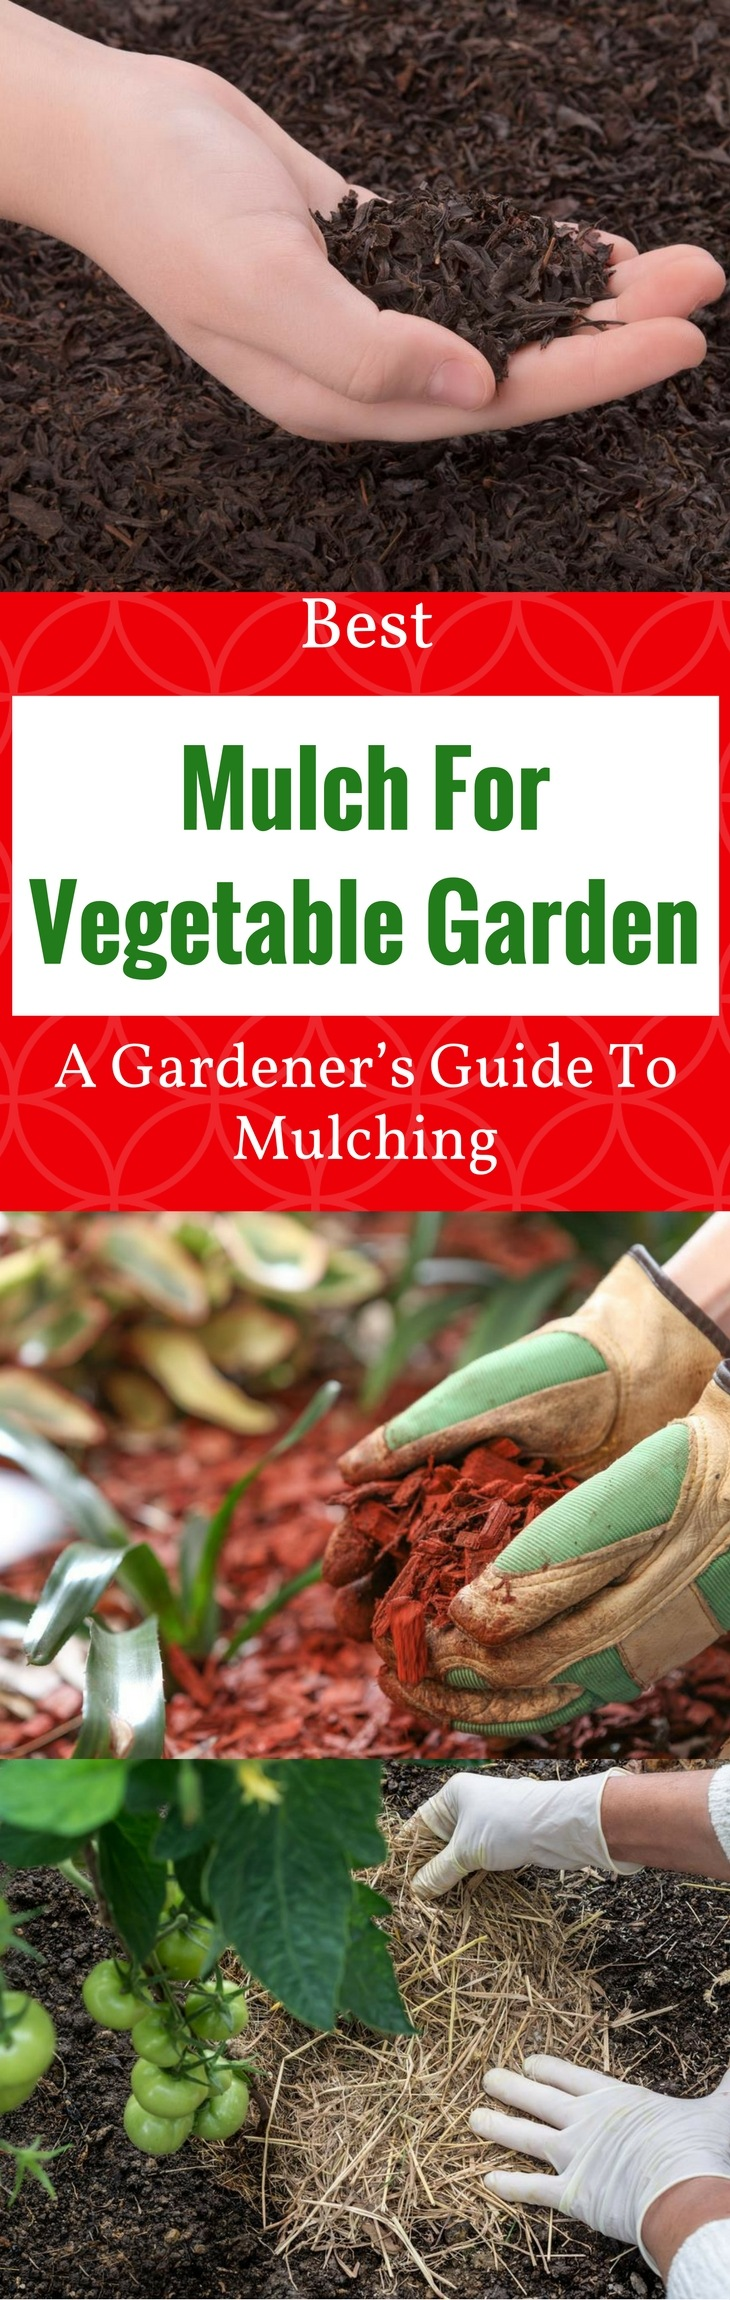 Best Mulch For Vegetable Garden 2018 A Gardener S Guide To